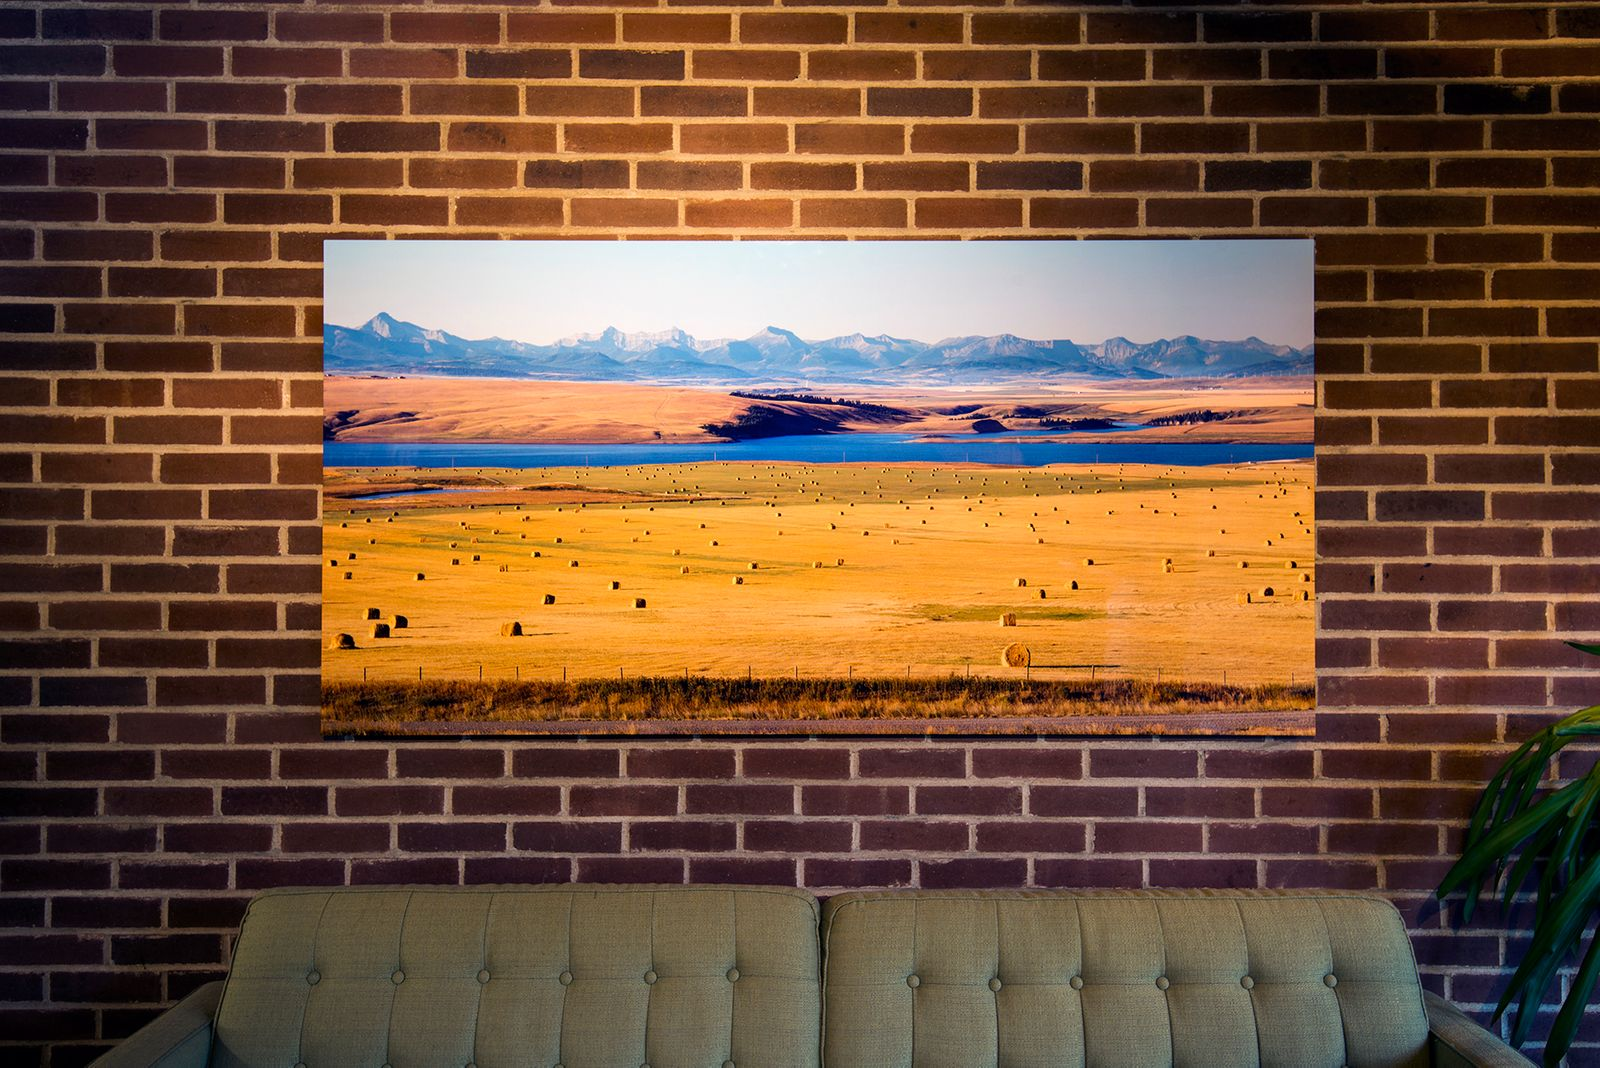 Alberta landscape, 36x72 inches on aluminum panel